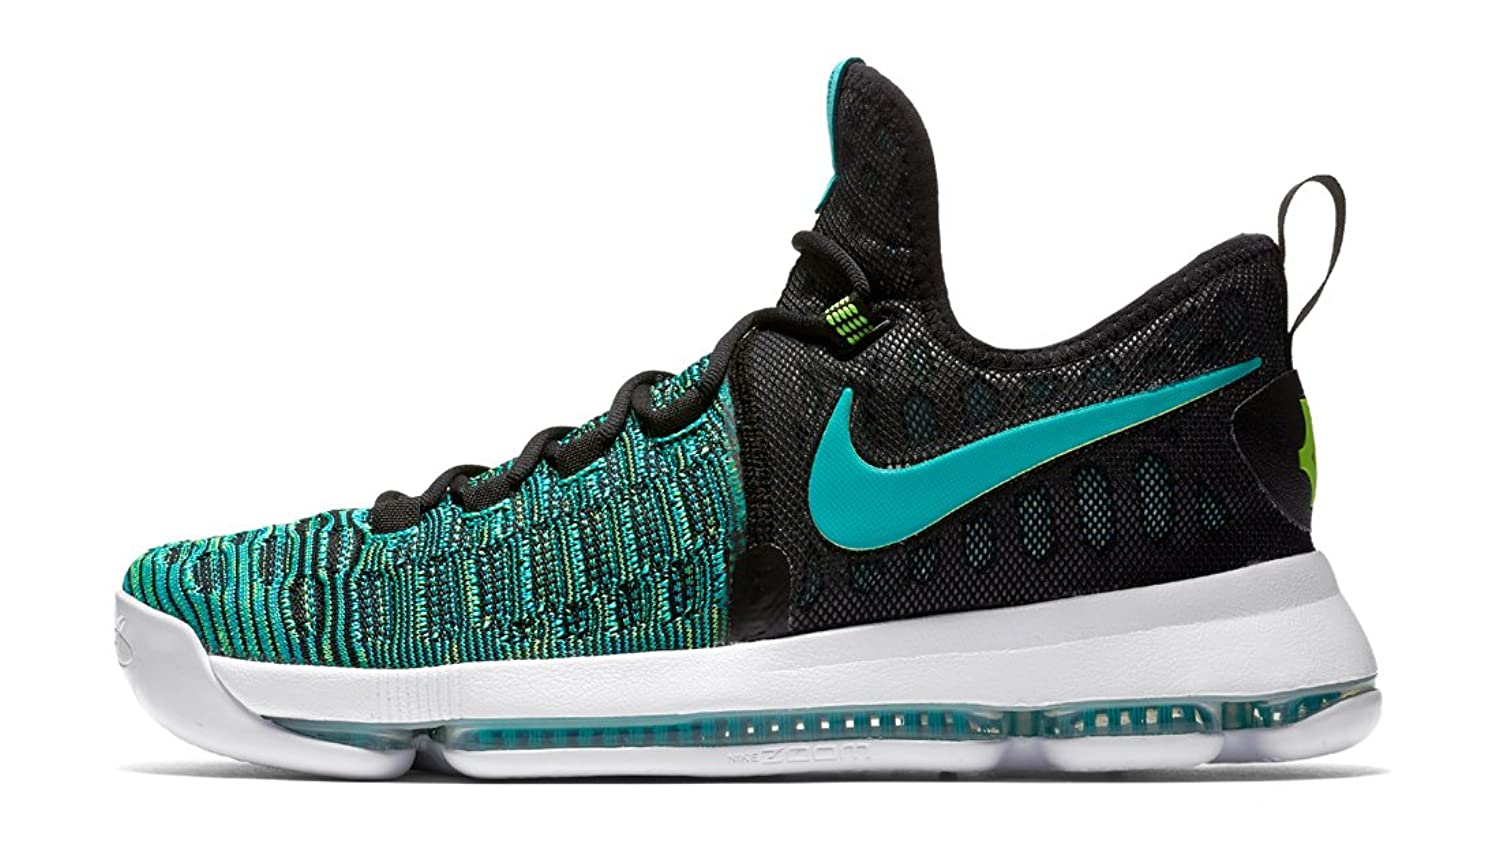 NIKE ZOOM KD 9 KEVIN DURANT BIRDS OF PARADISE JADE BLACK 843392-300 8 10 13